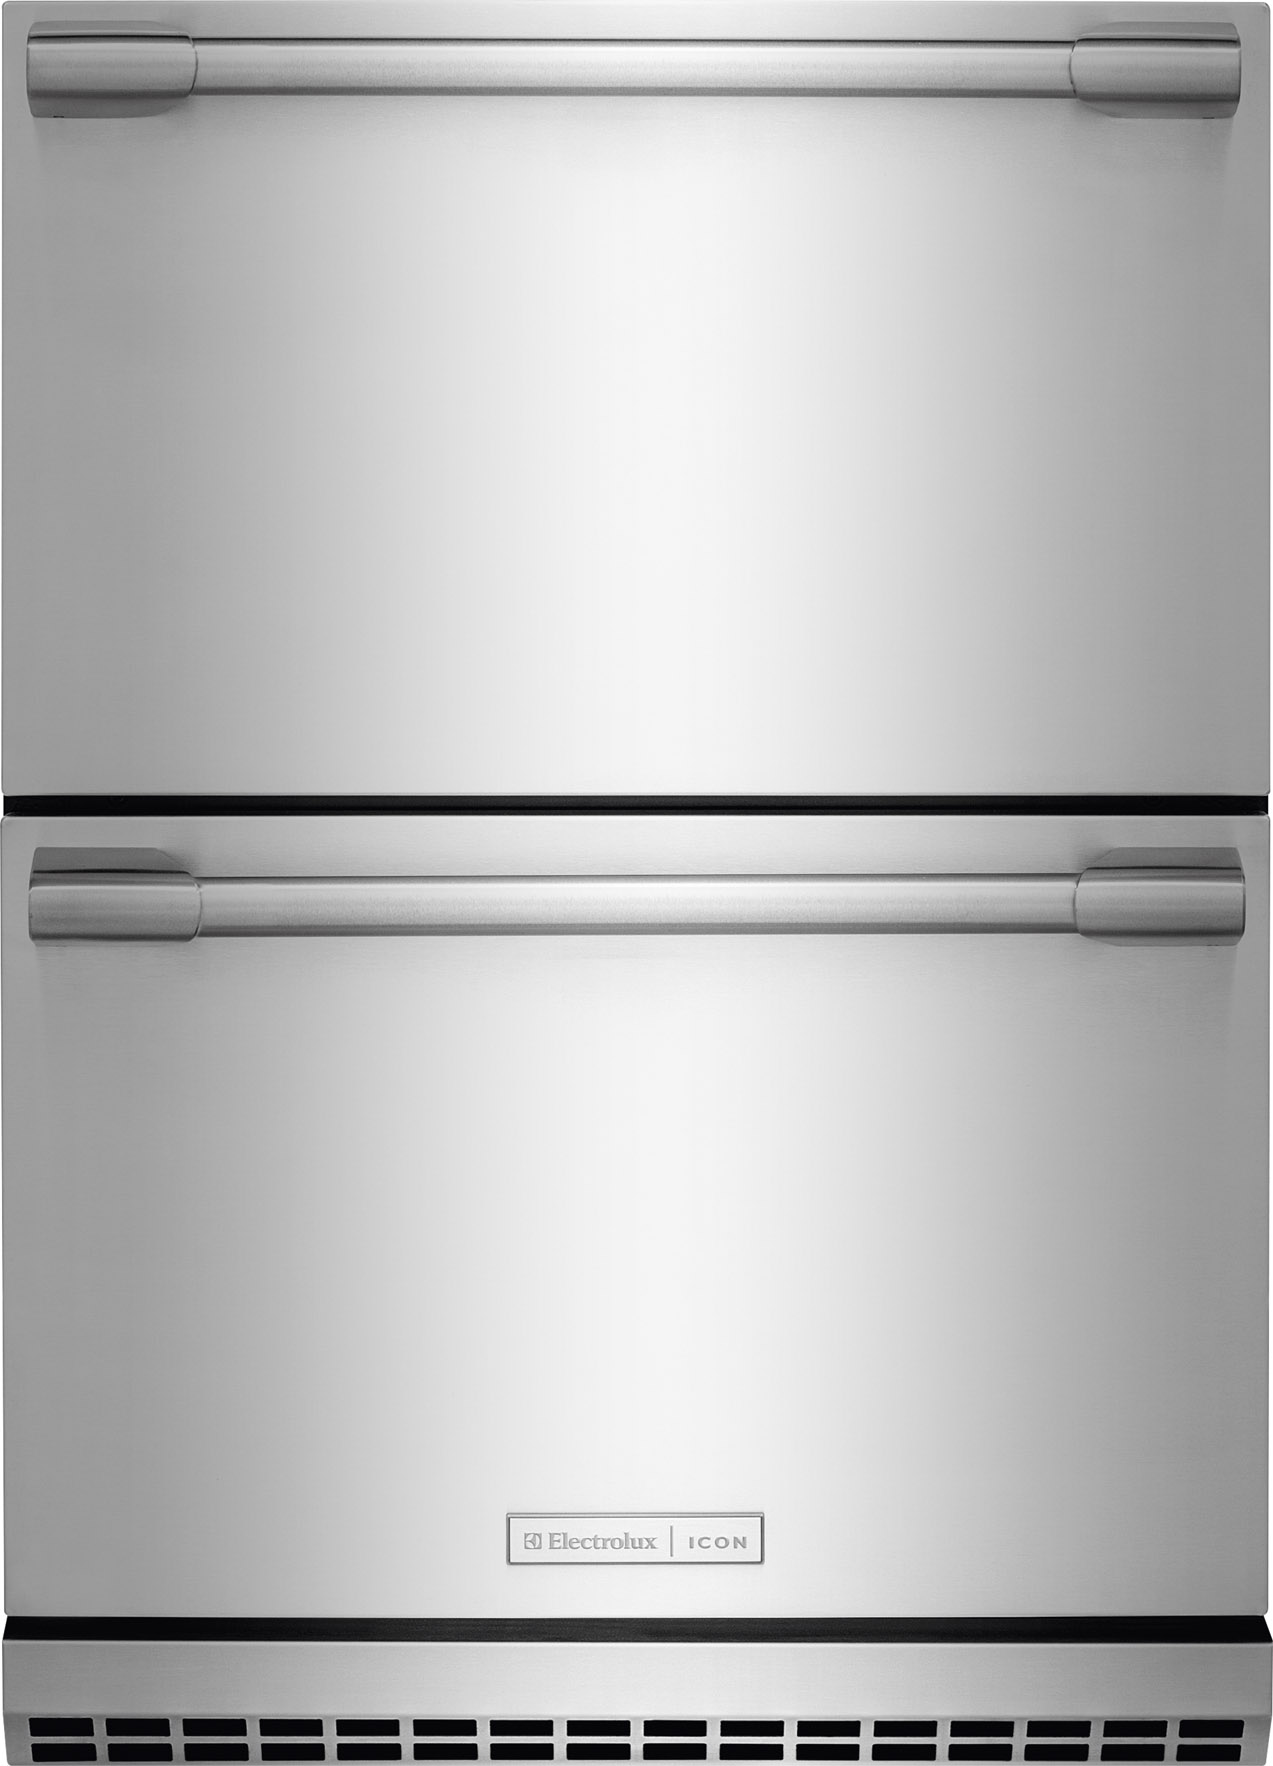 hide kitchen appliances restoration drawers to the drawer fridge in articles refrigerator an design for old house ways